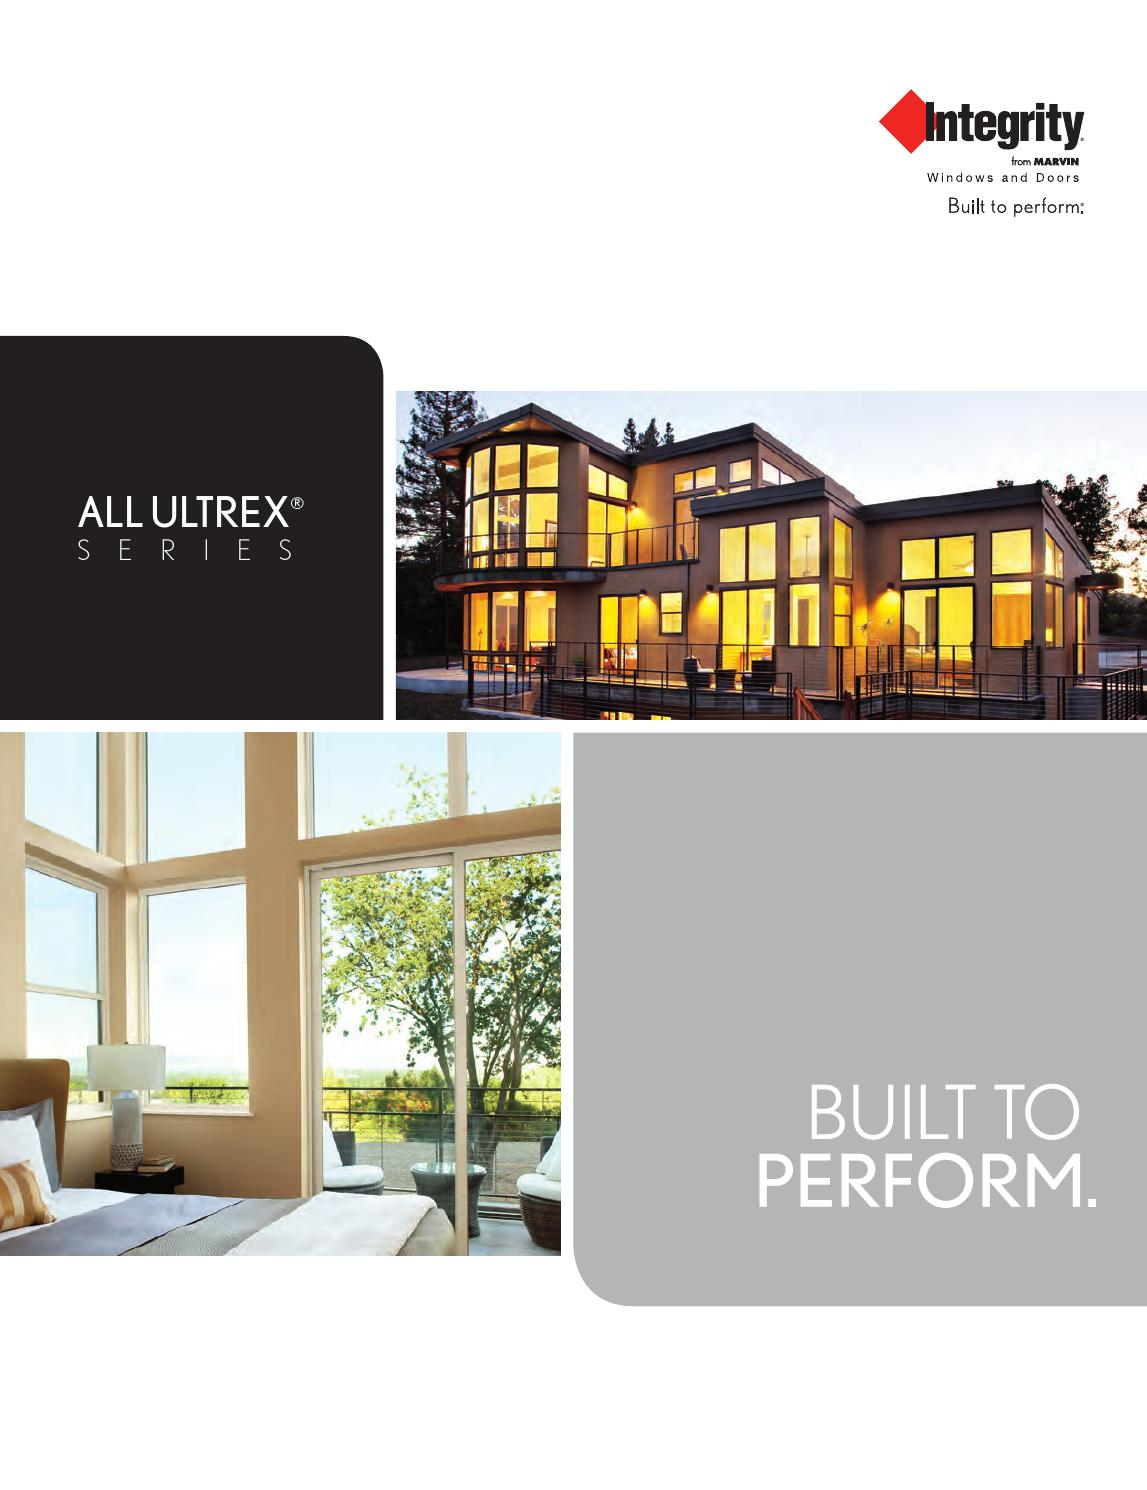 Integrity all ultrex specification options catalog by for Marvin integrity all ultrex